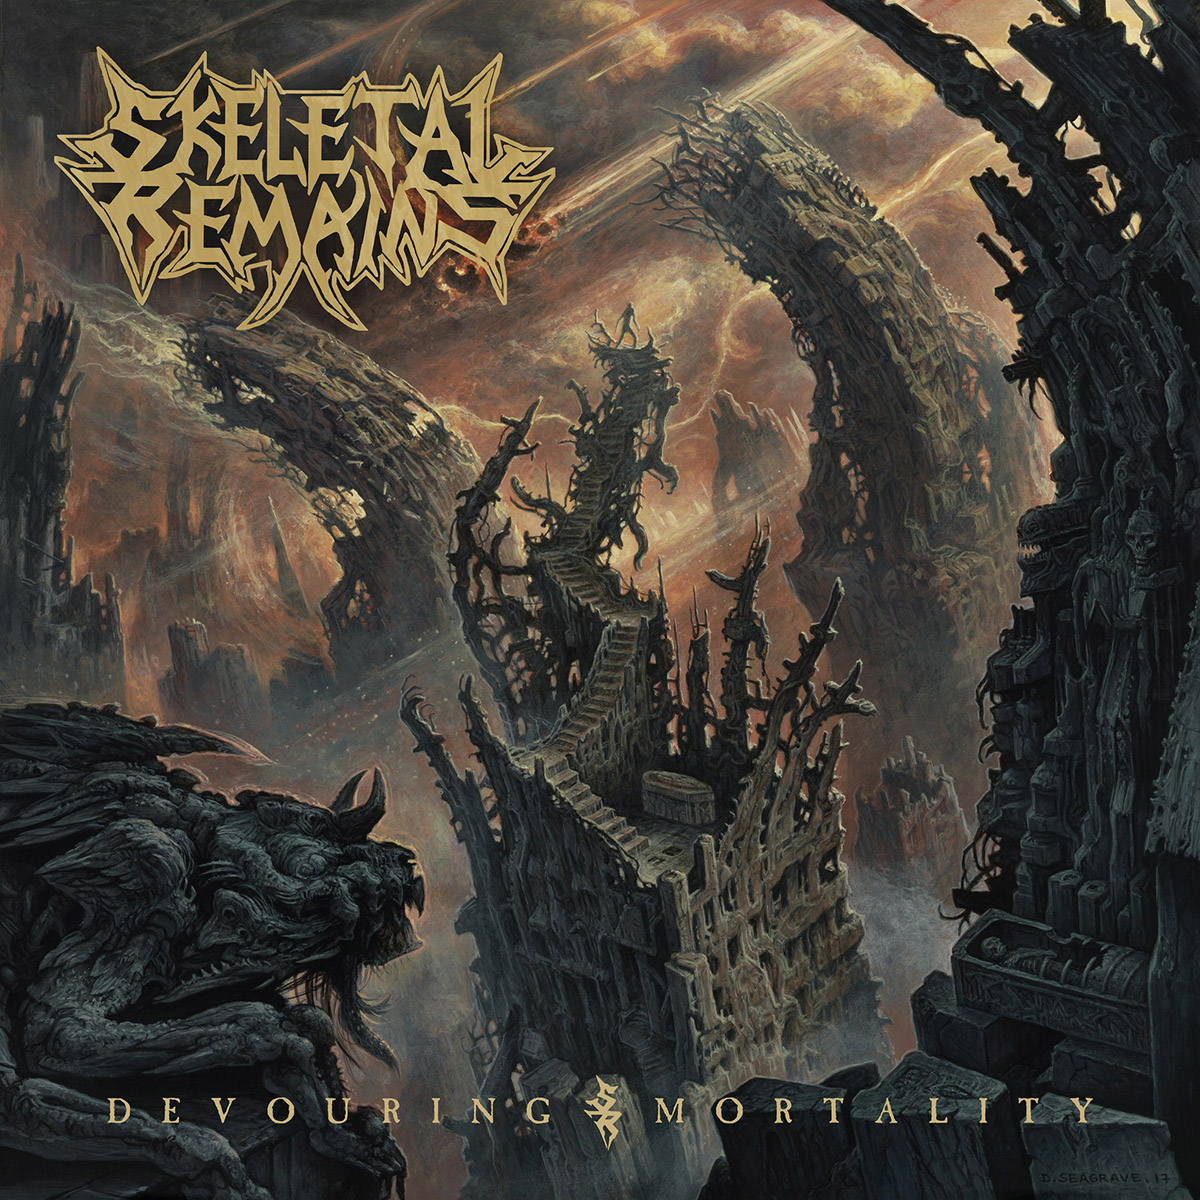 Skeletal Remains. Devouring Mortality (LP) skeletal remains skeletal remains devouring mortality lp 180 gr cd